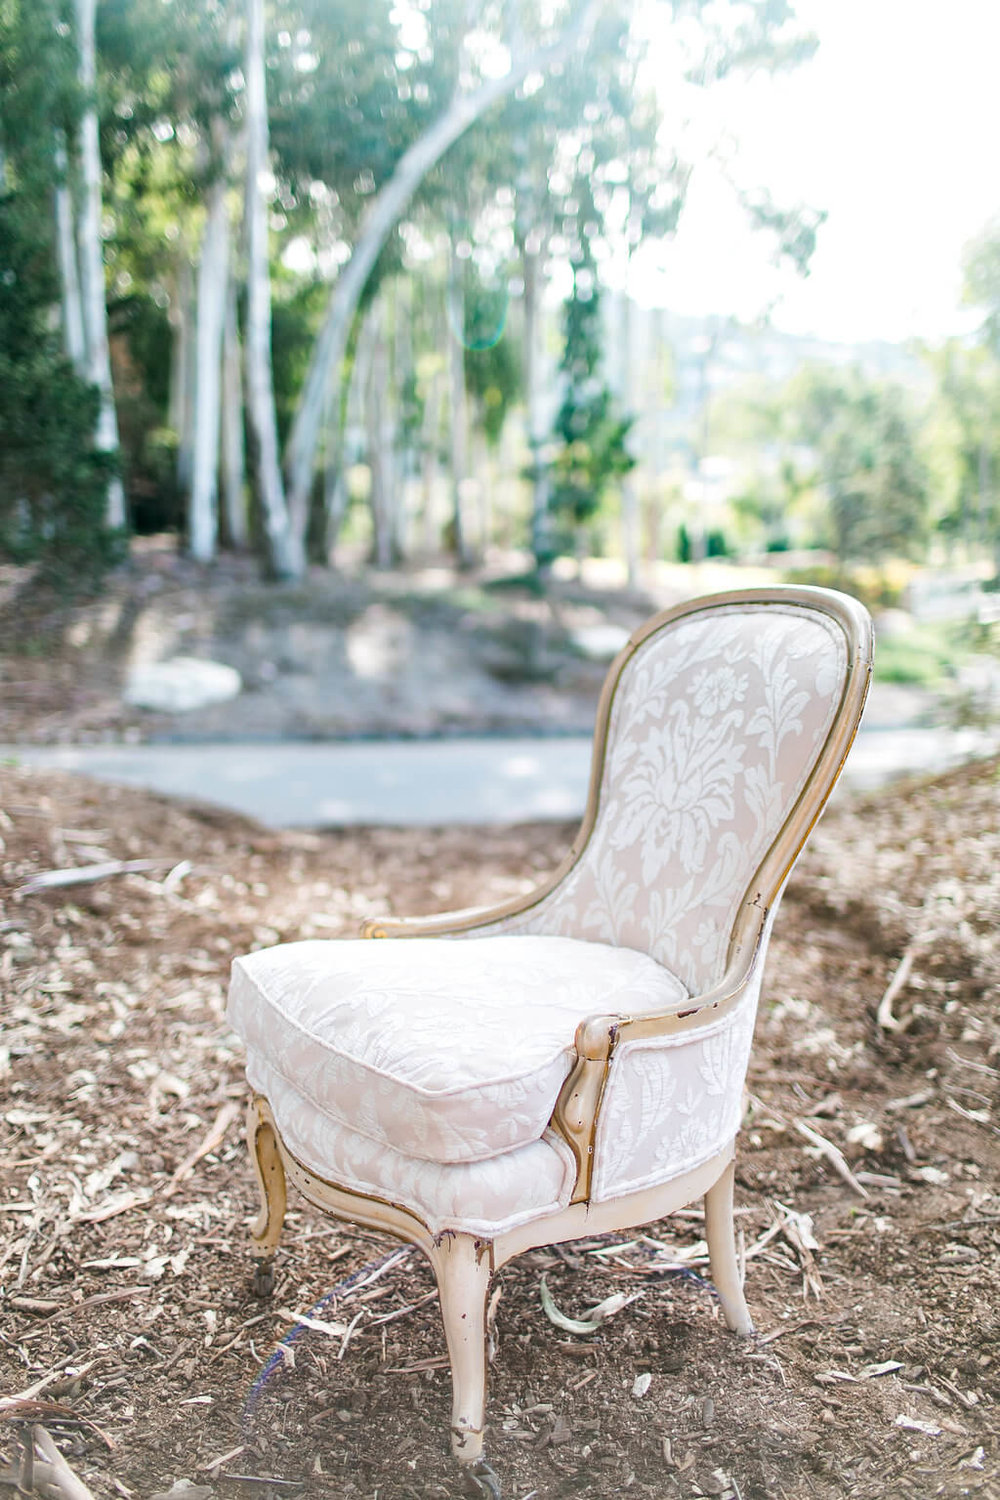 Provenance Vintage Rentals Los Angeles French Provincial Arm Chair Vintage Furniture Rentals Los Angeles Prop Rentals Los Angeles.jpg